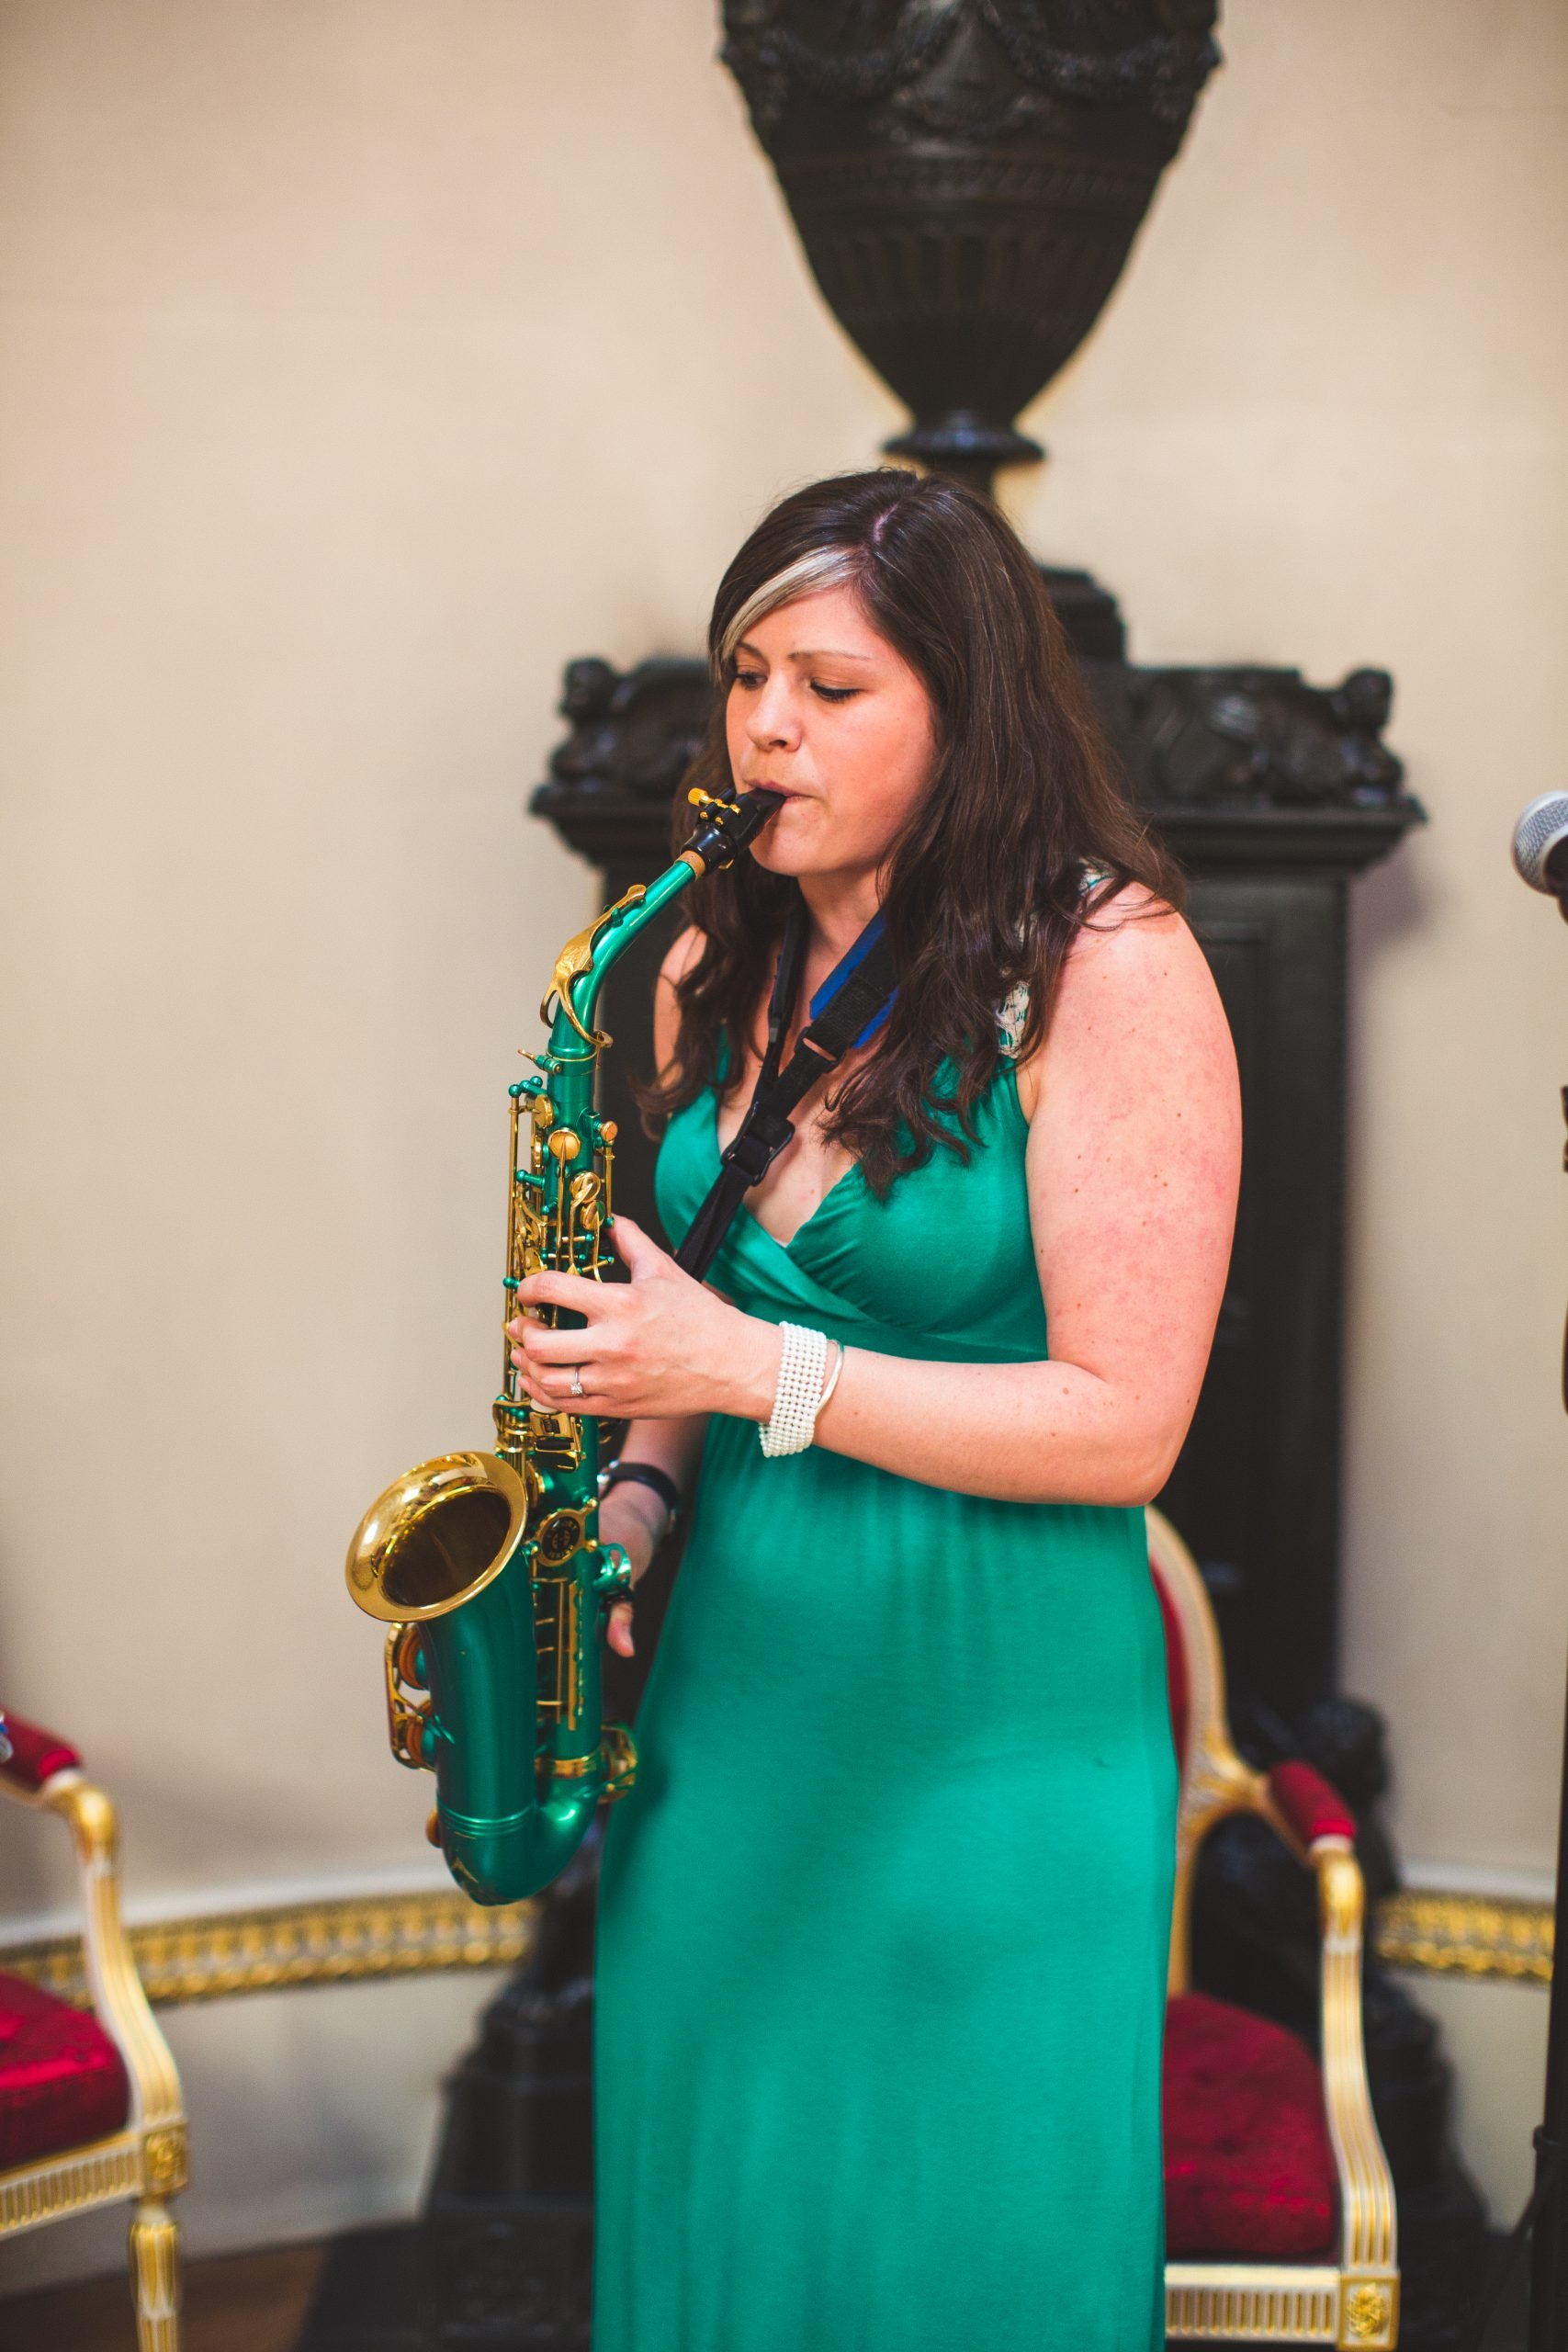 saxophone player wearing green dress playing green saxophone